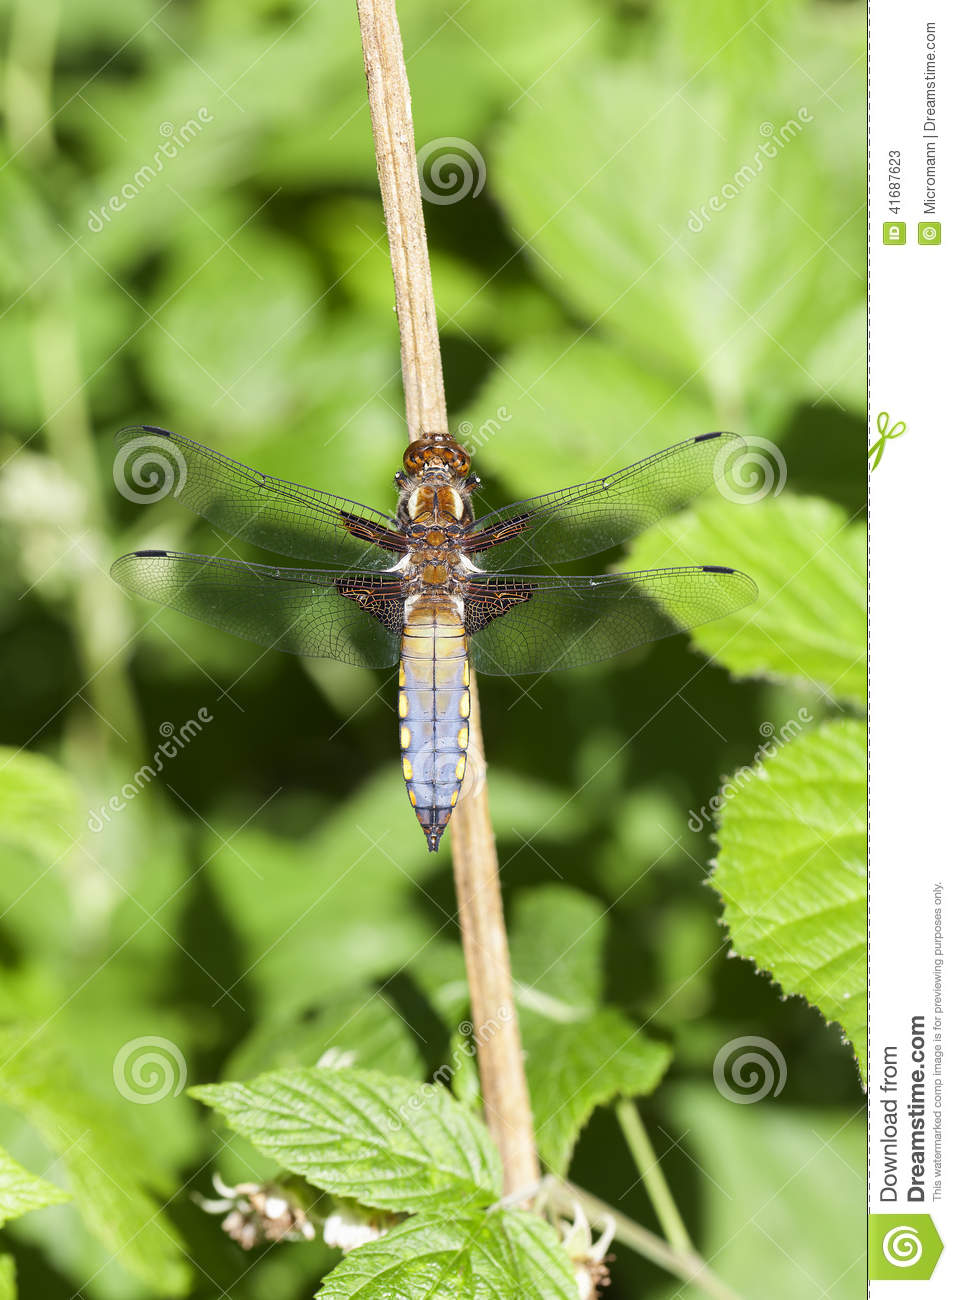 Download Broad-bodied chaser stock image. Image of nature, body - 41687623